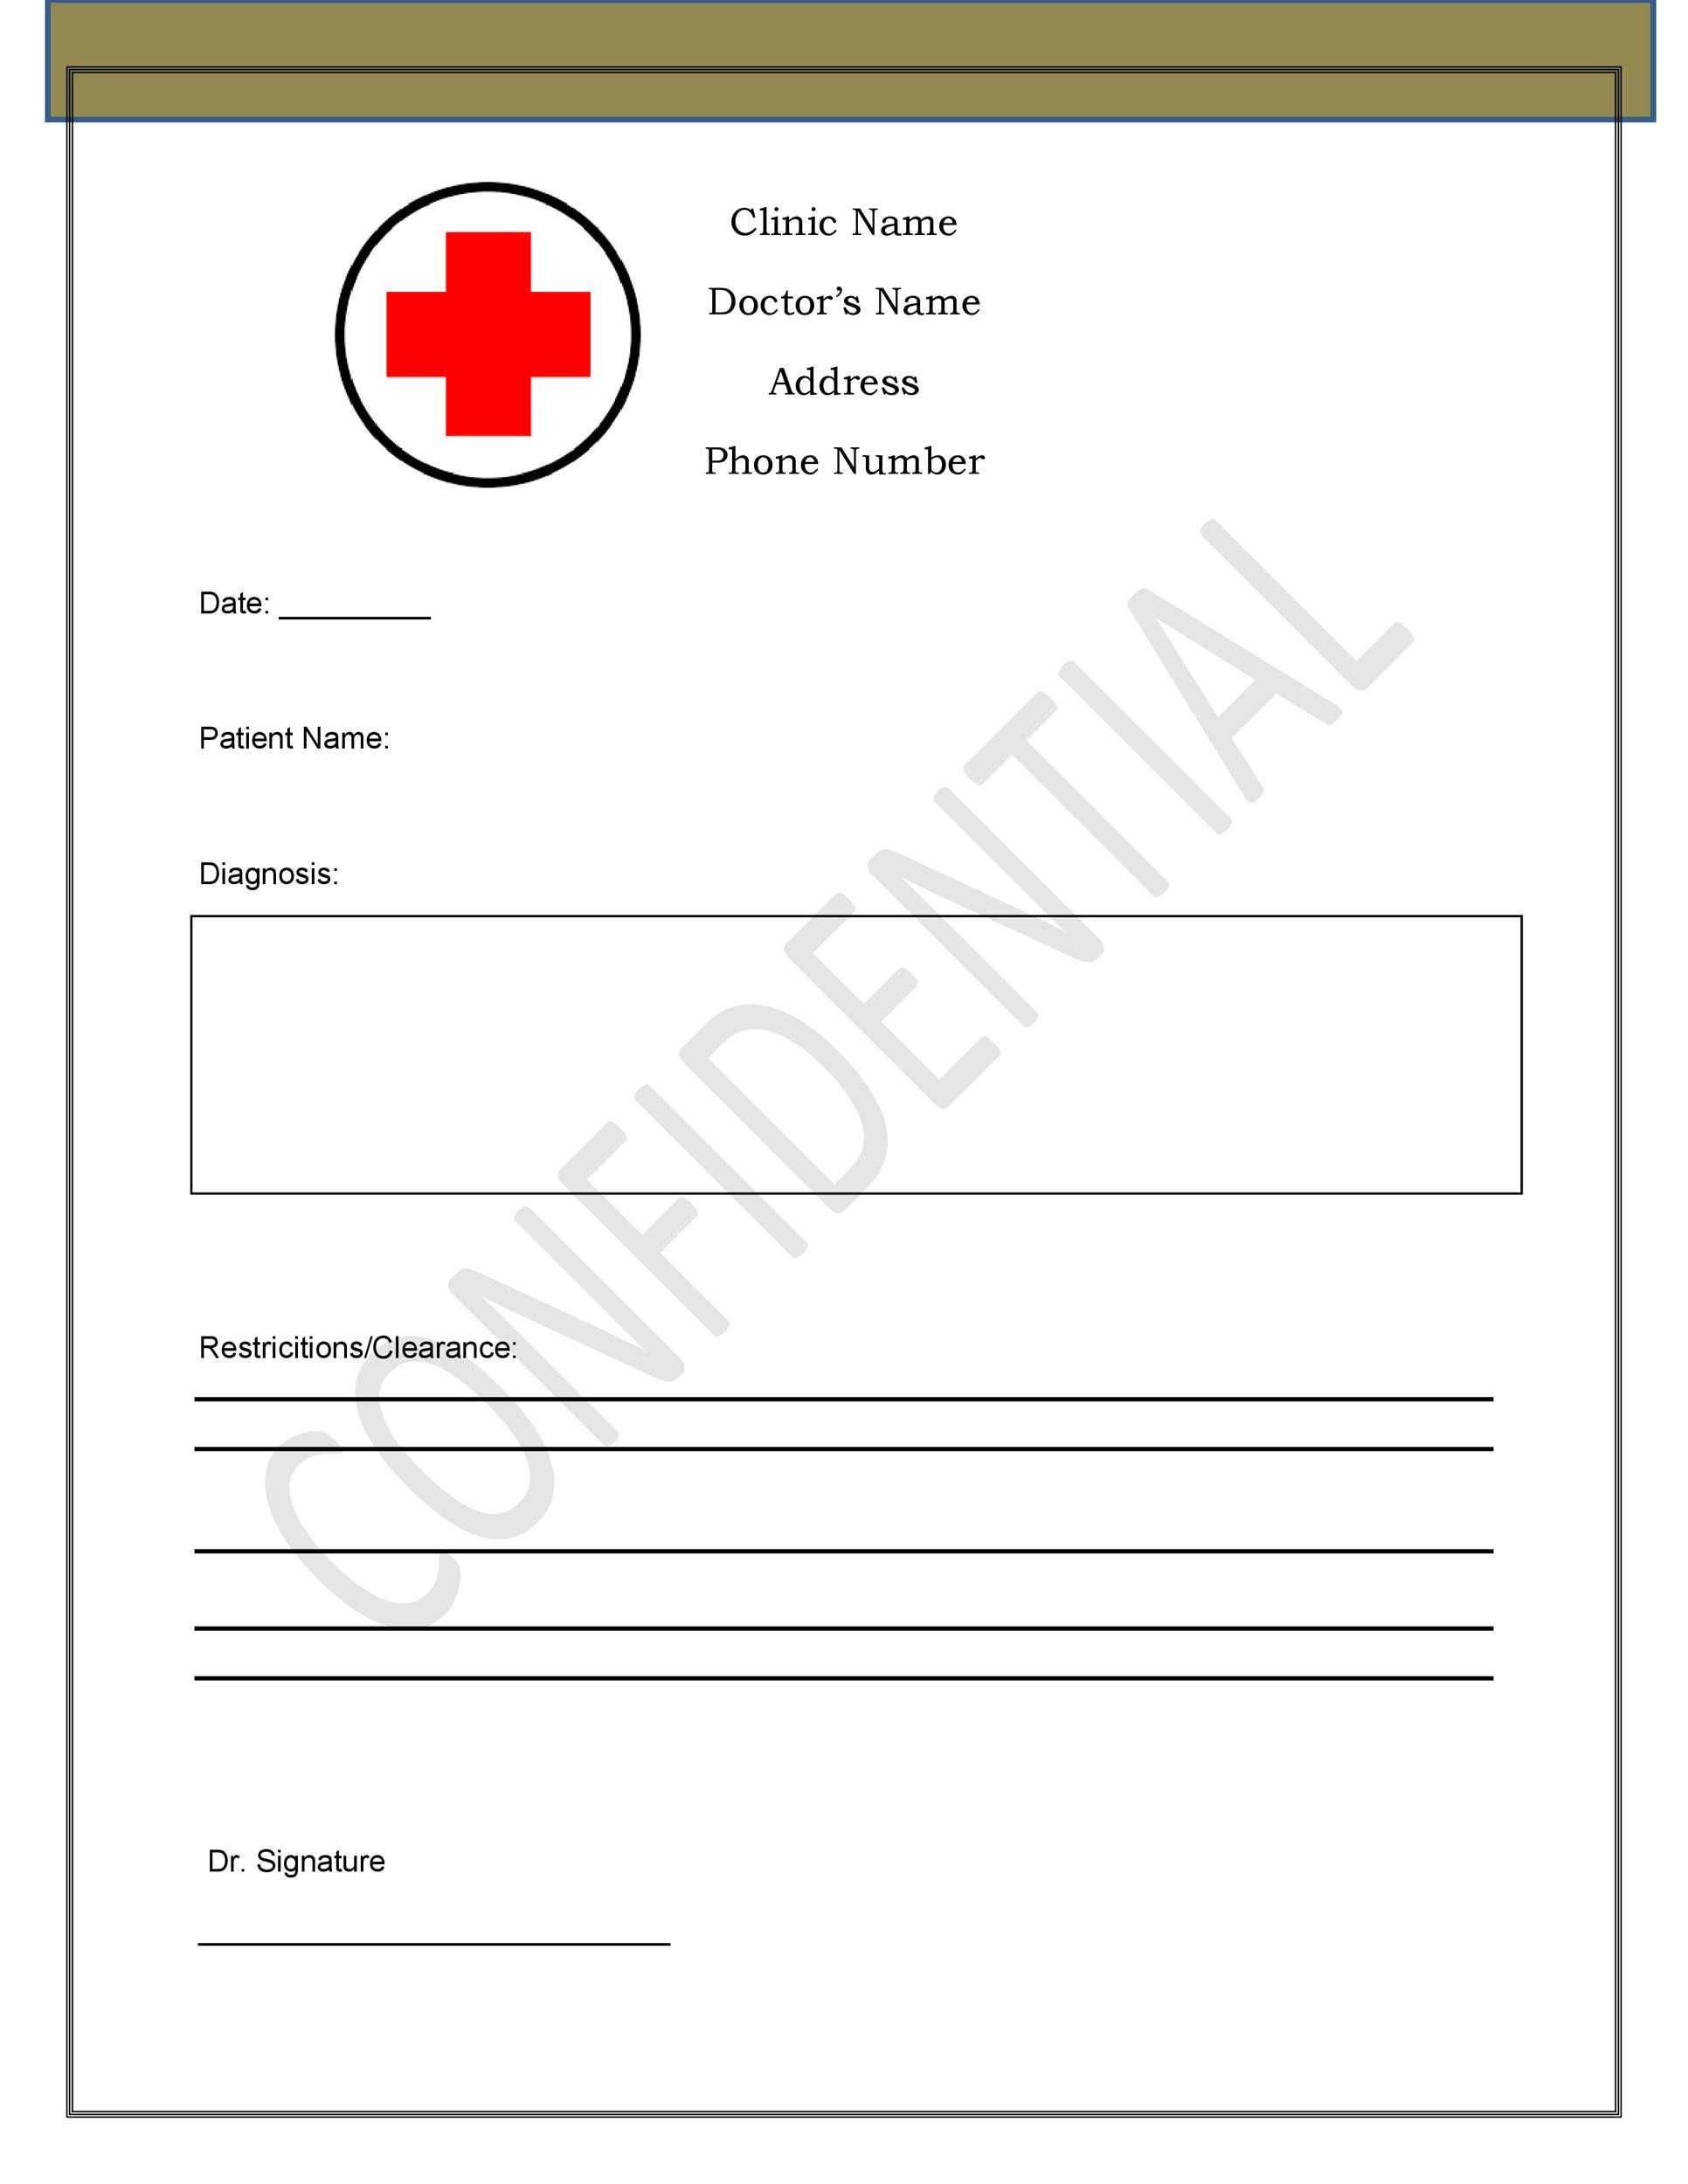 Clinic Note Image Of Form Authorization For Mayo Clinic To - doctors note template